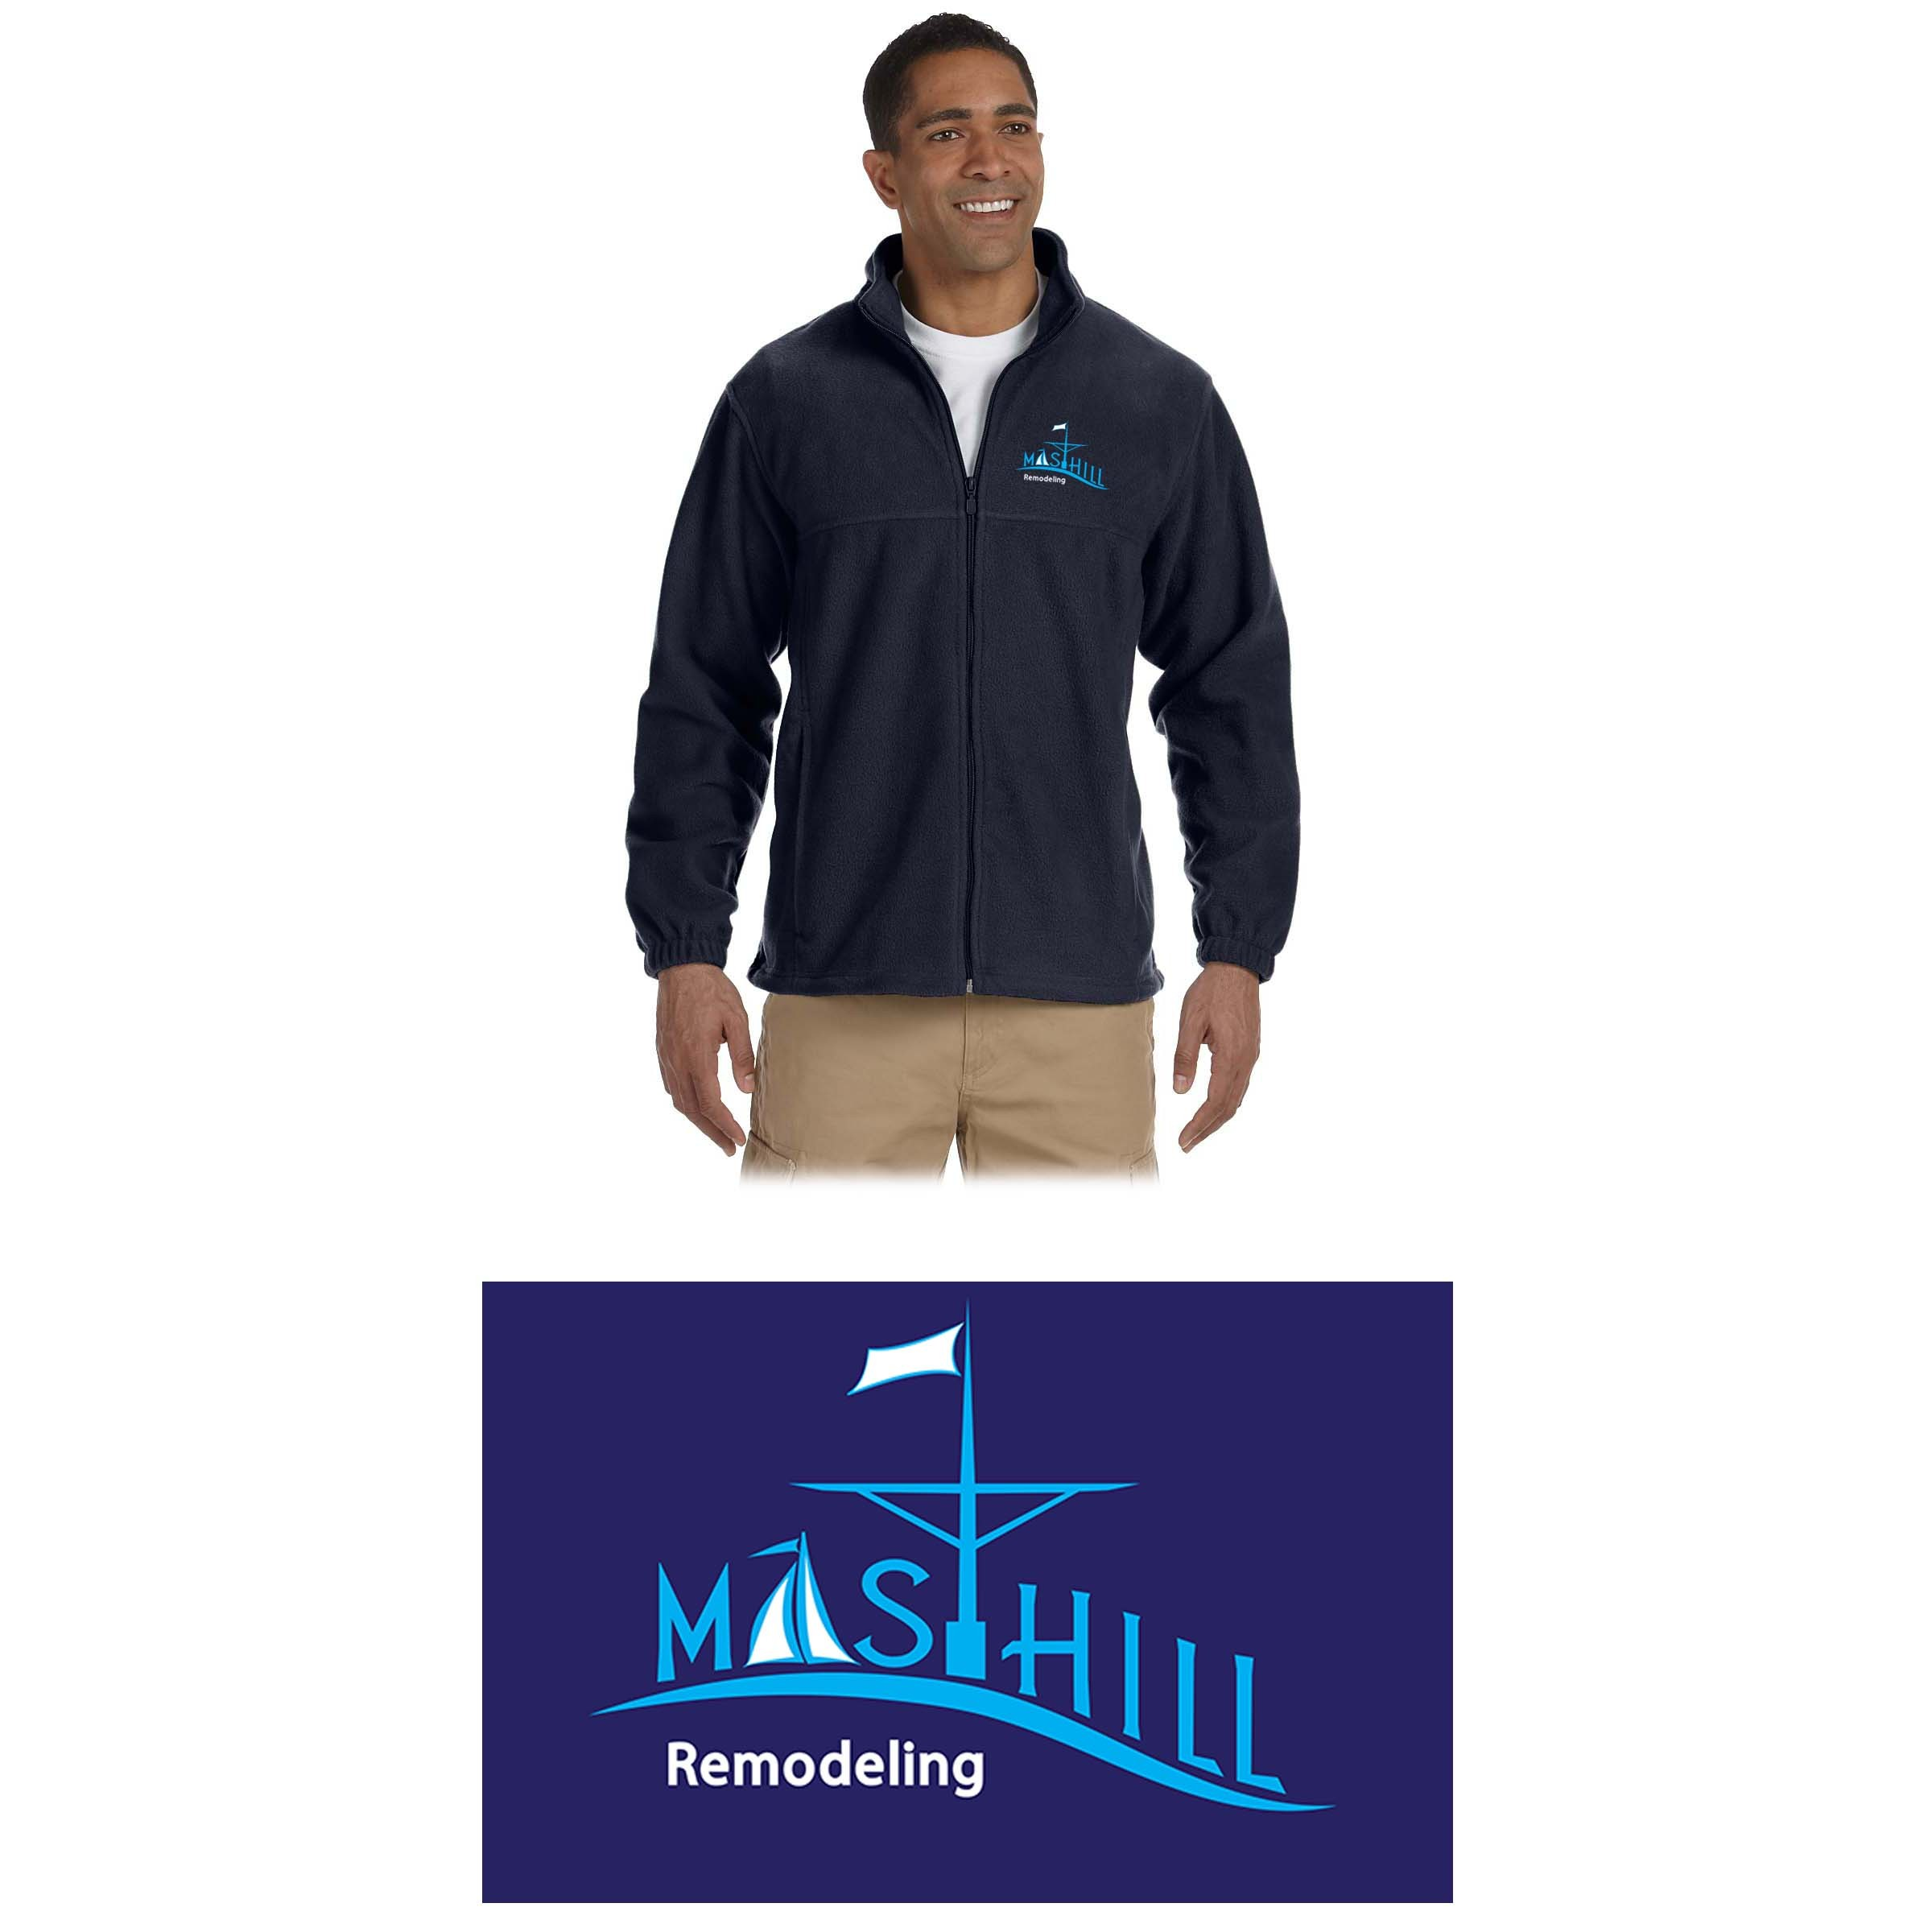 MastHill Remodeling Harriton Men's 8 oz. Full-Zip Fleece, a PrimePlus Item